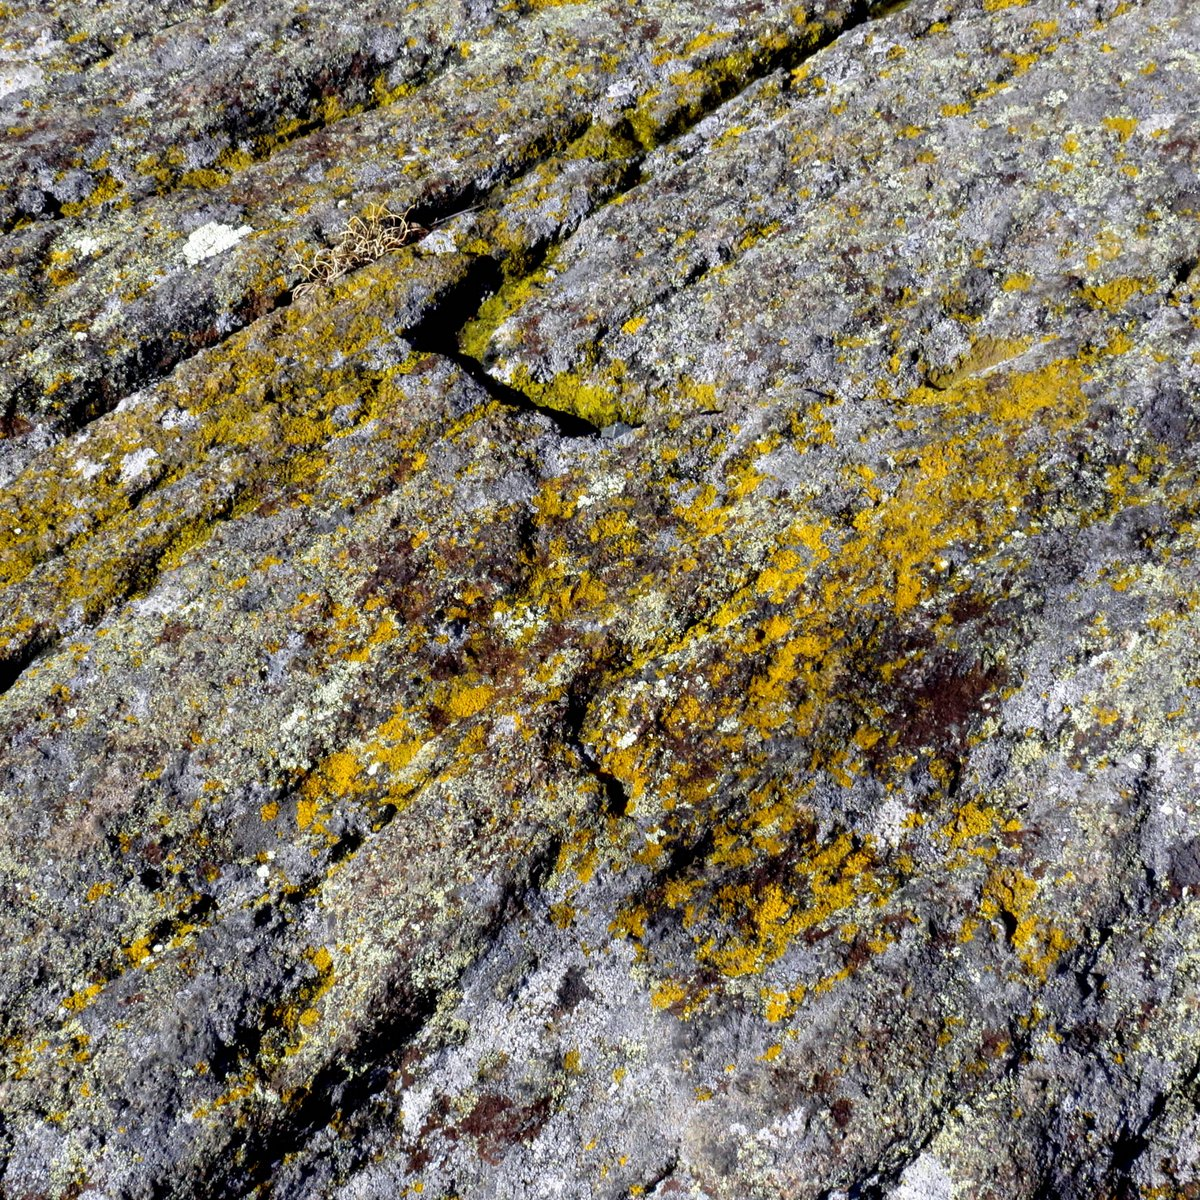 19-common-gold-speck-lichens